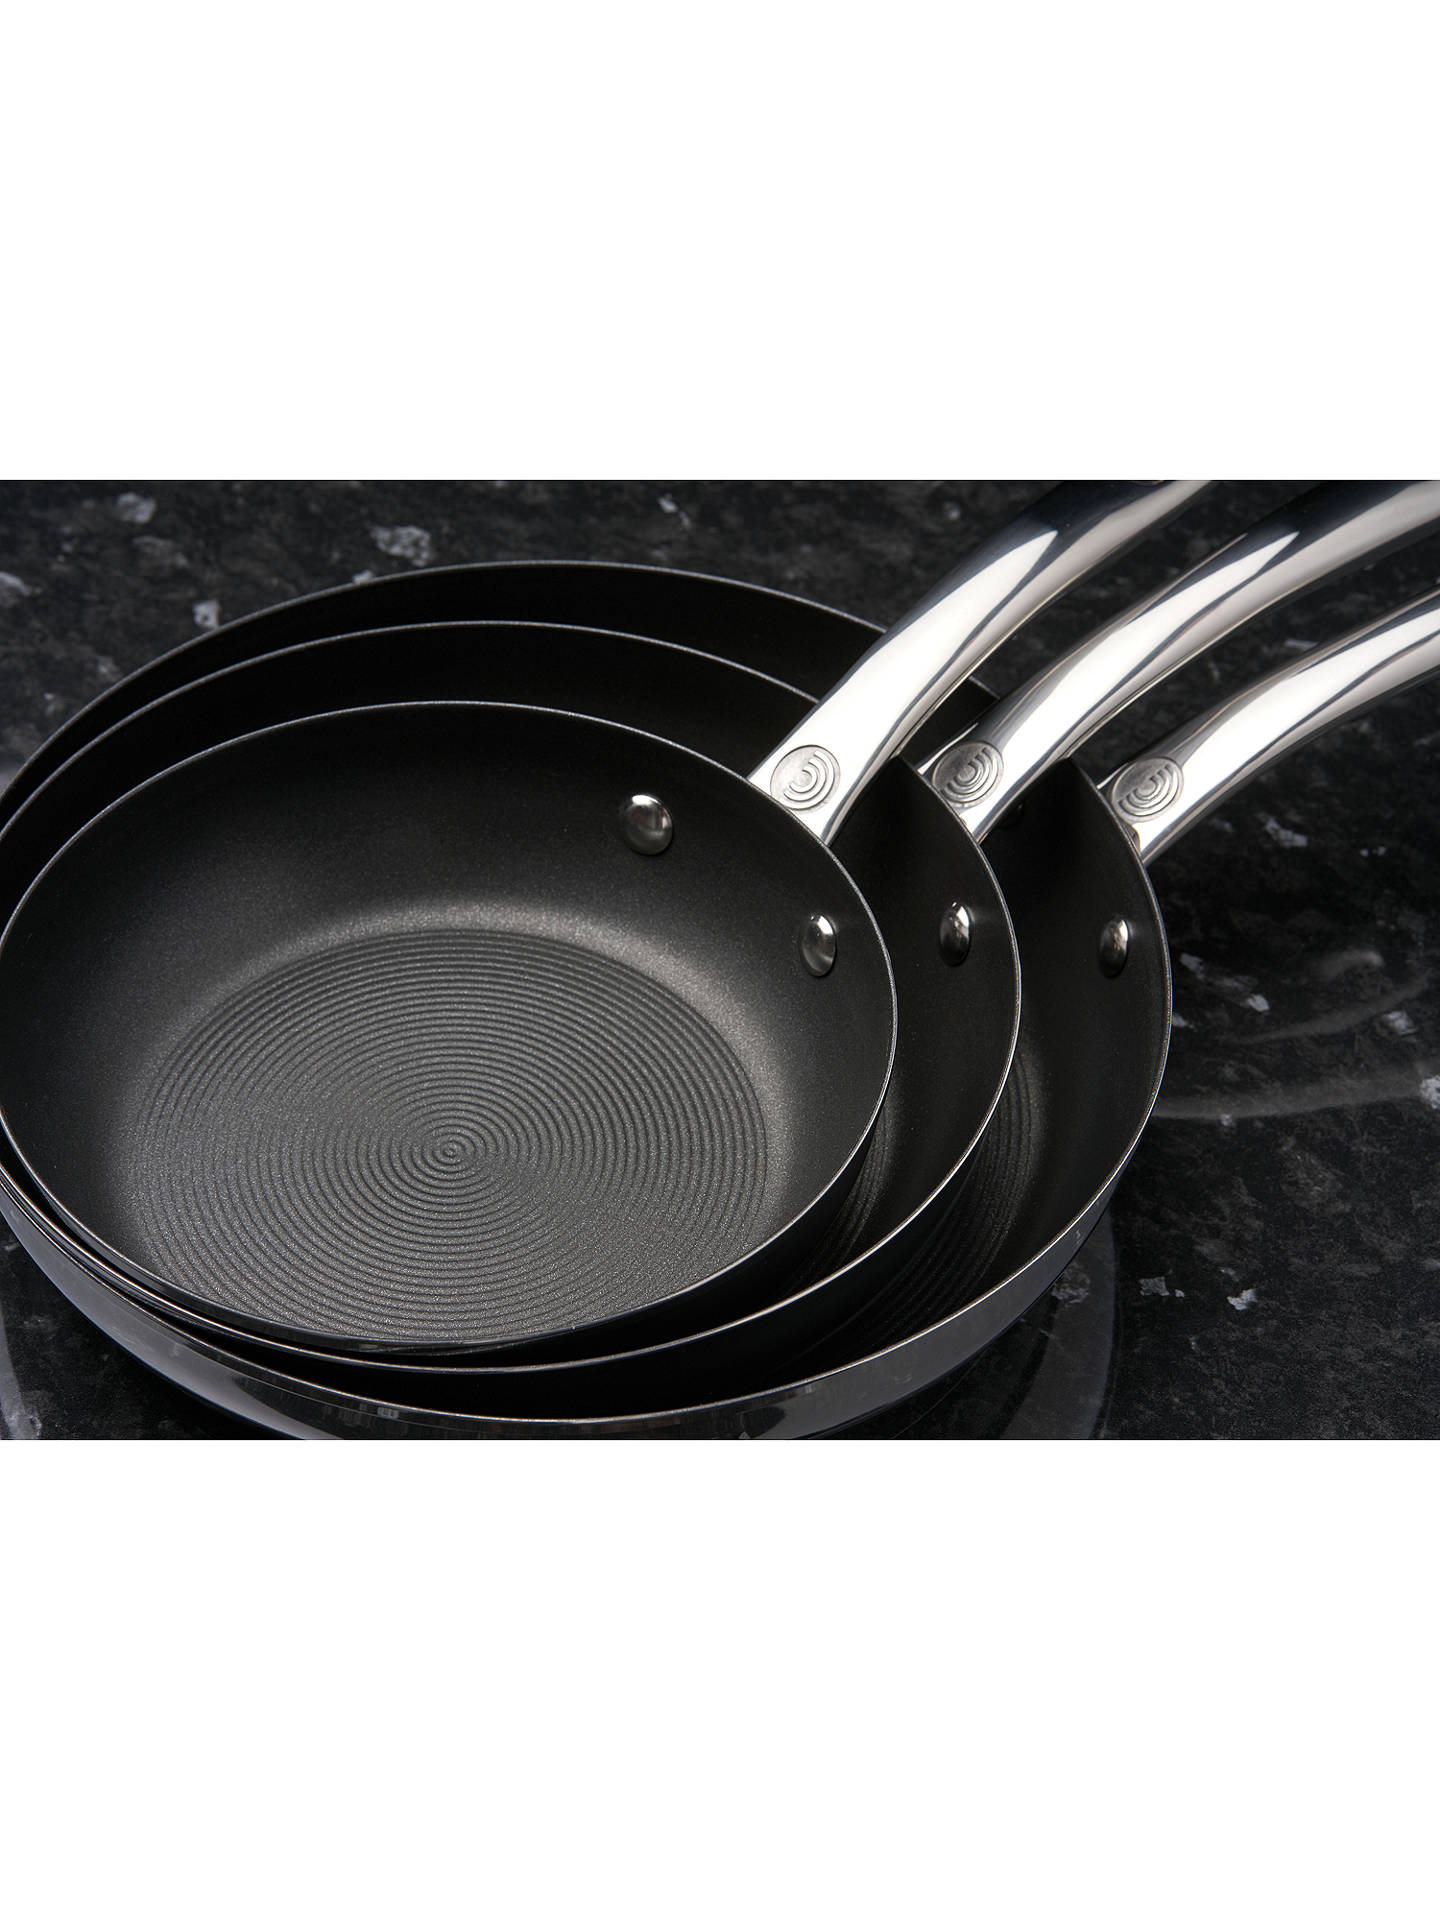 BuyCirculon Ultimum Stainless Steel 16cm Saucepan Online at johnlewis.com